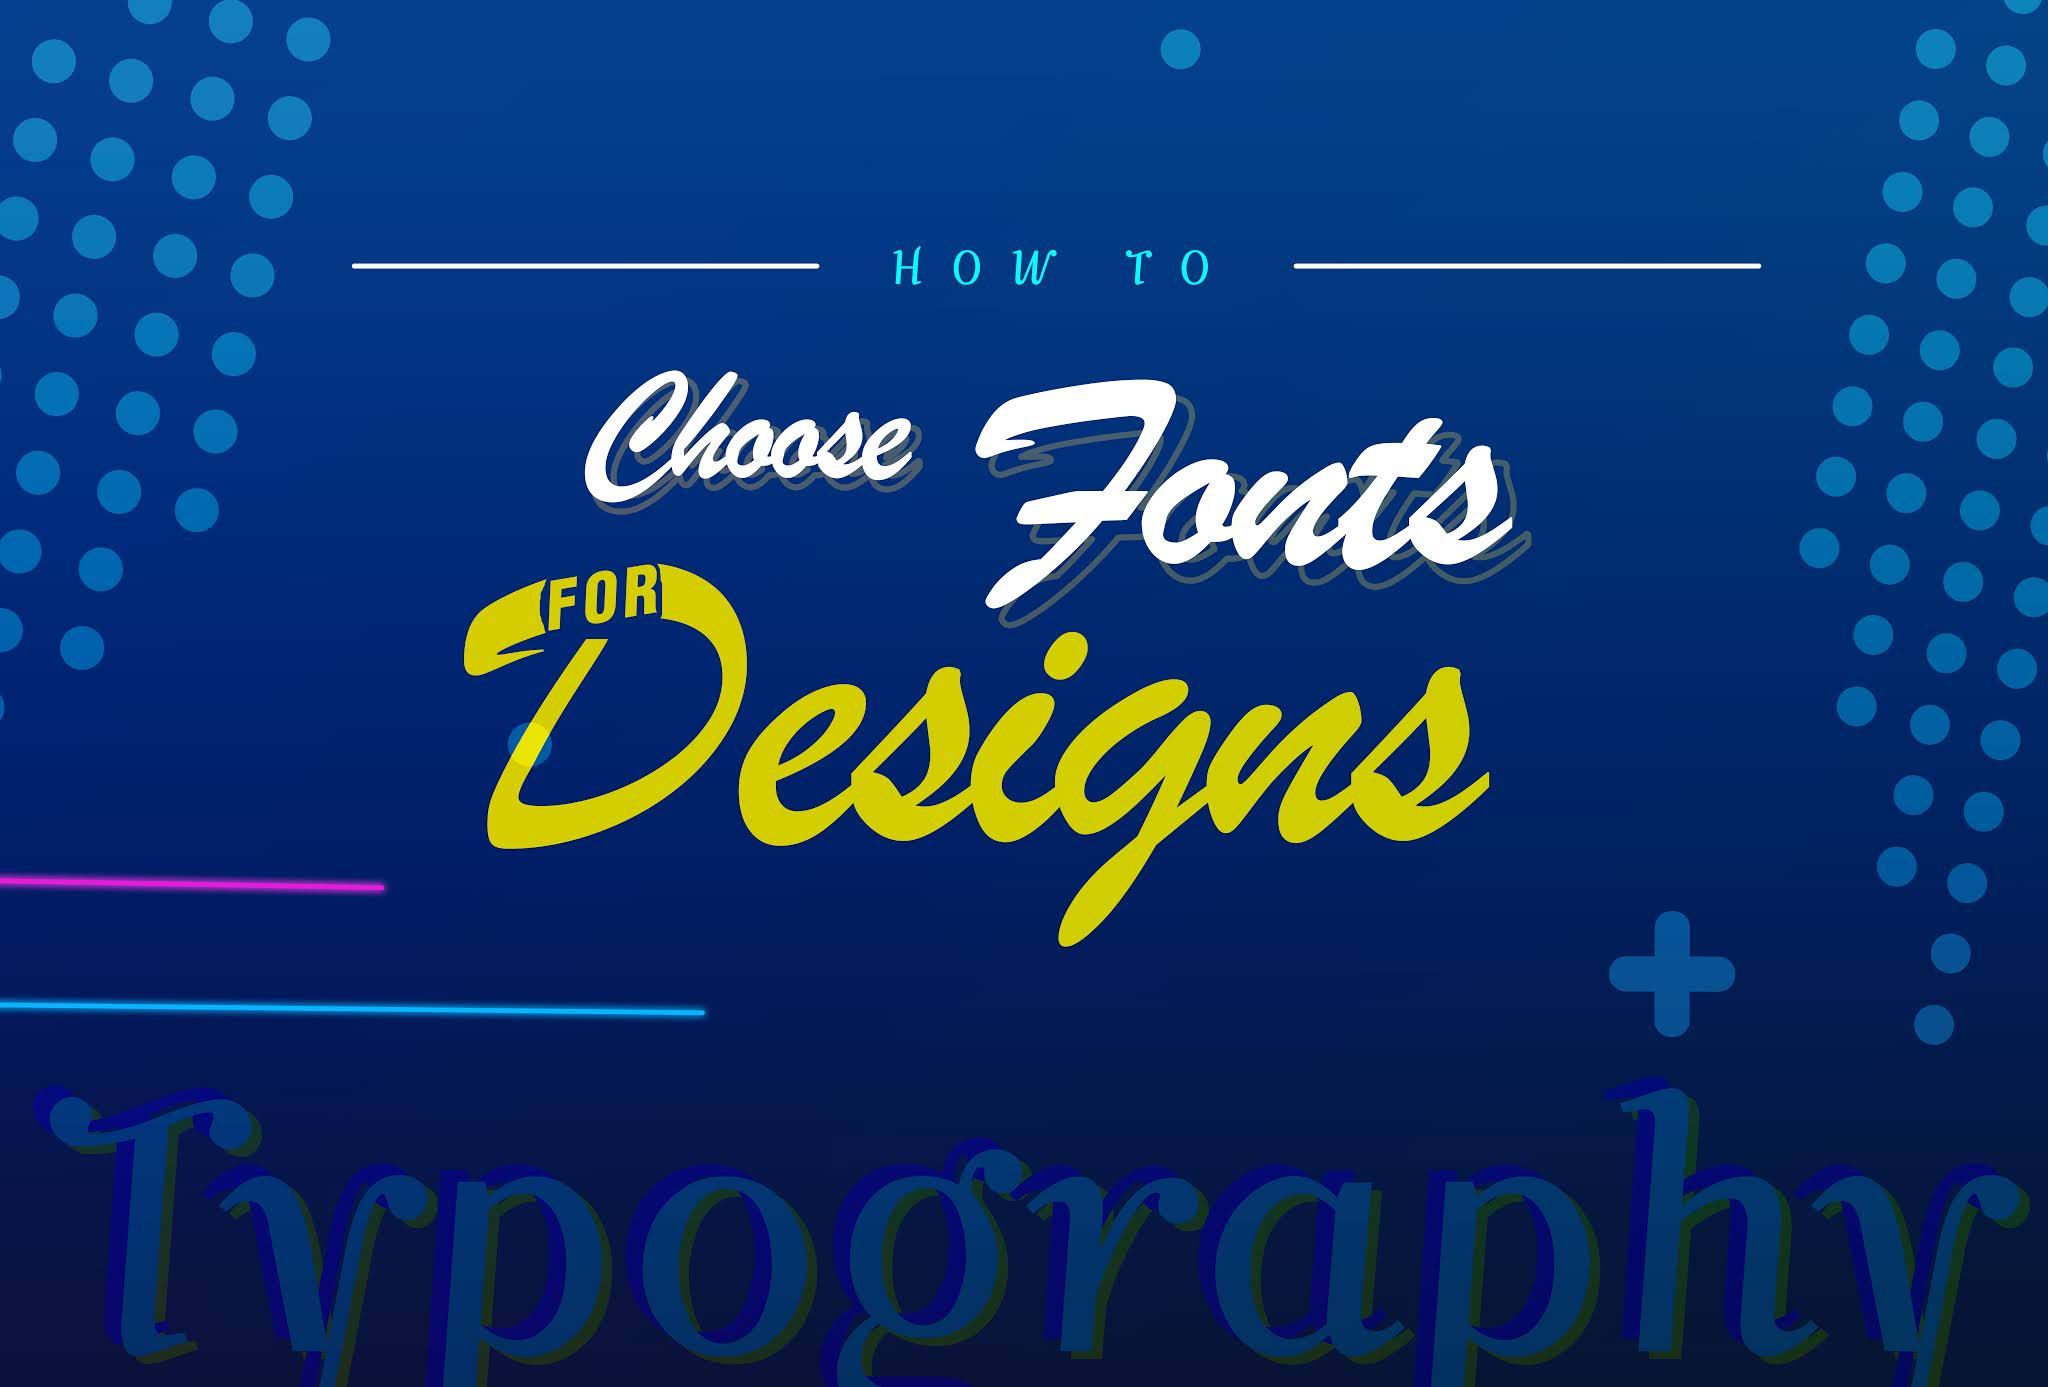 How To Choose Fonts For Designs